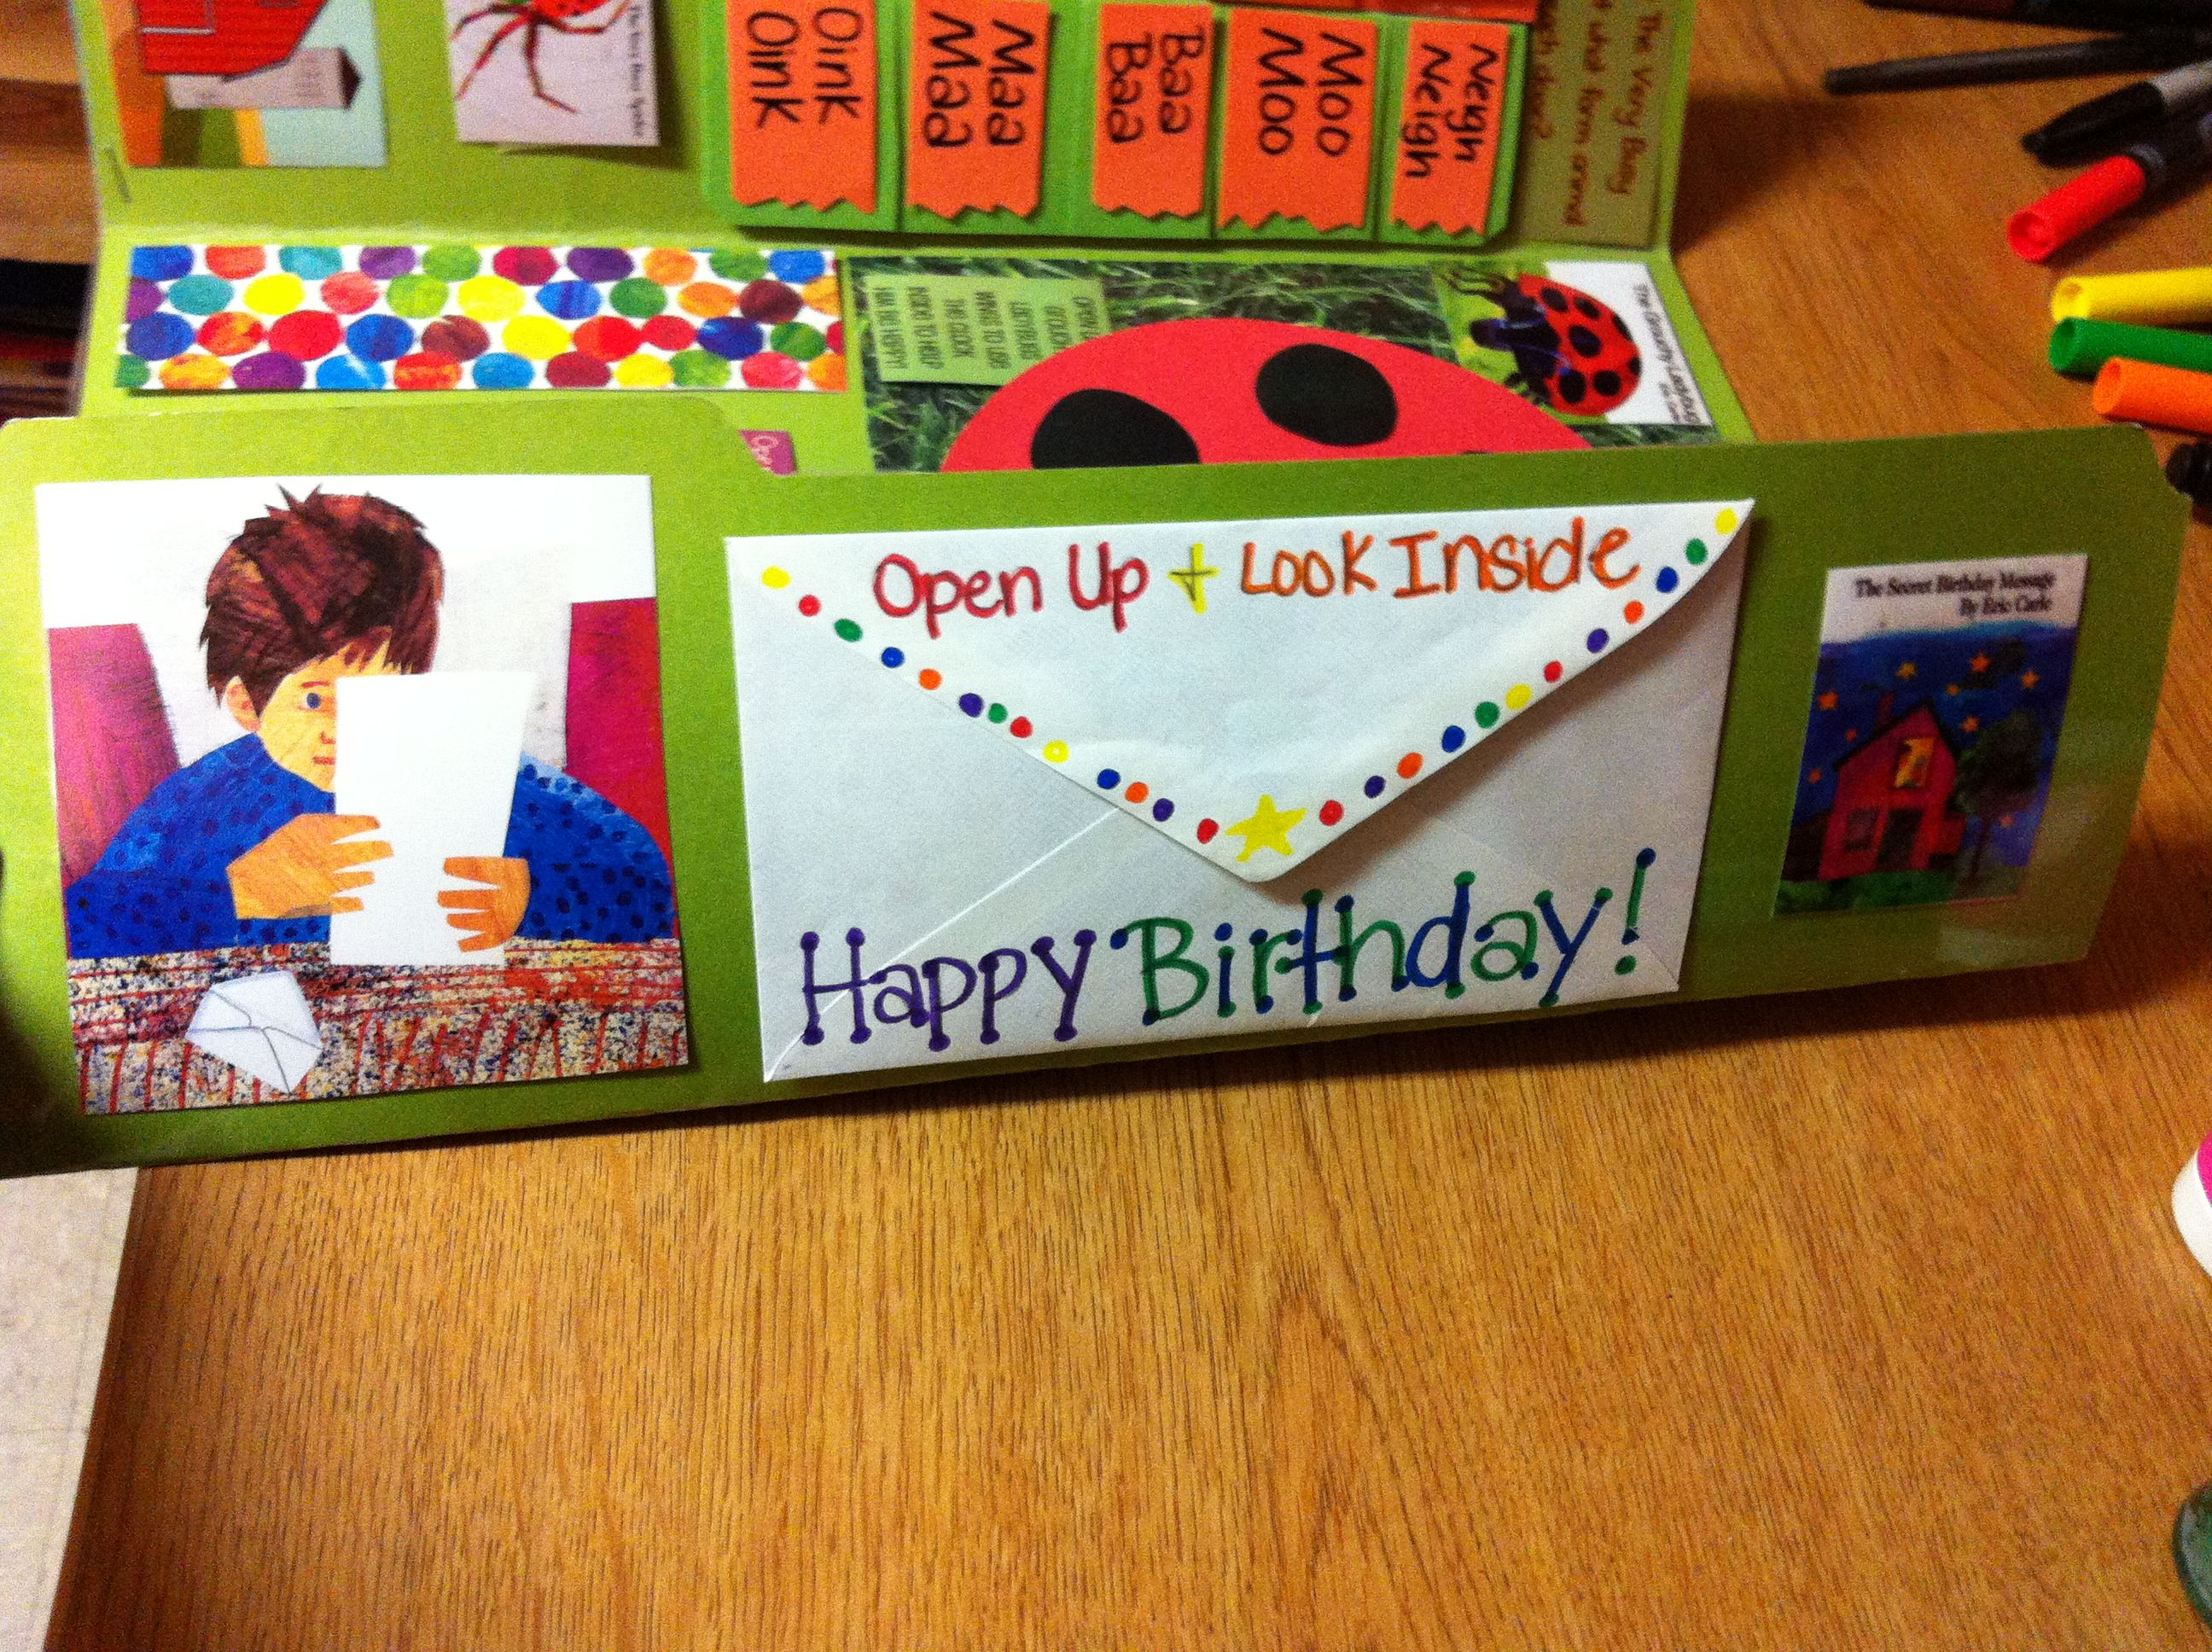 The Secret Birthday Message Flap